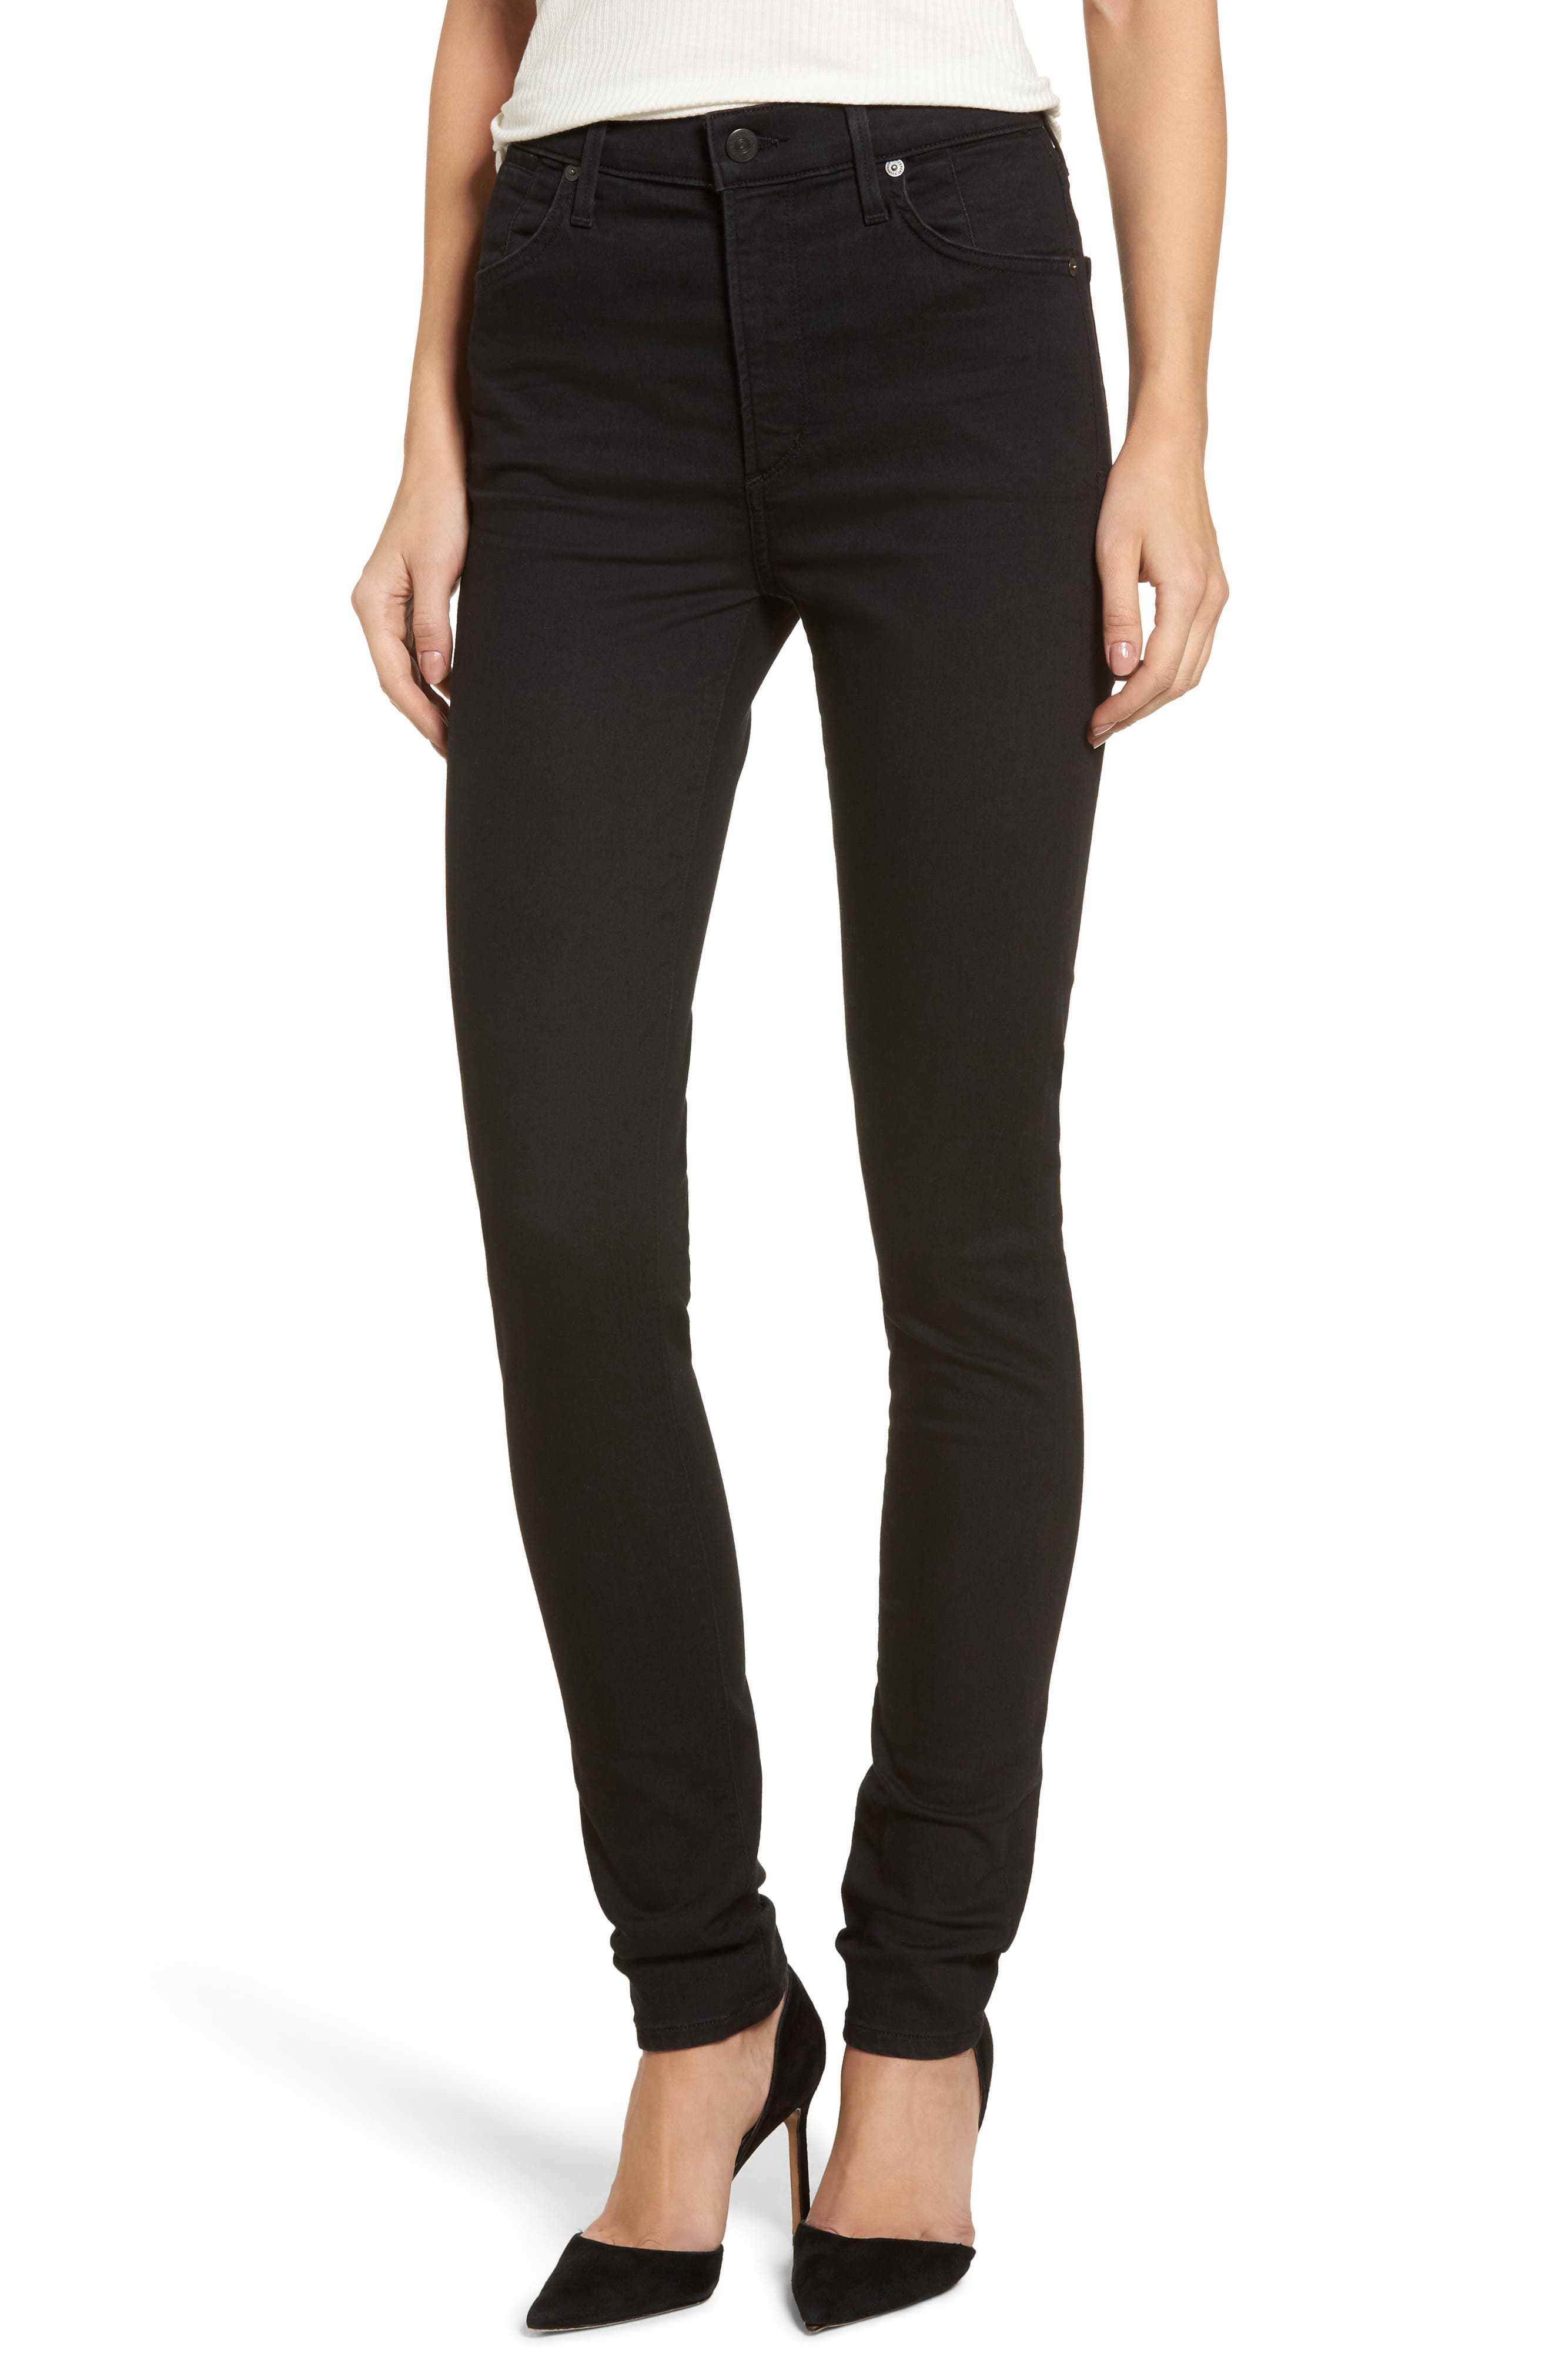 Alternate Image 1 Selected - Citizens of Humanity Carlie High Waist Skinny Jeans (All Night)